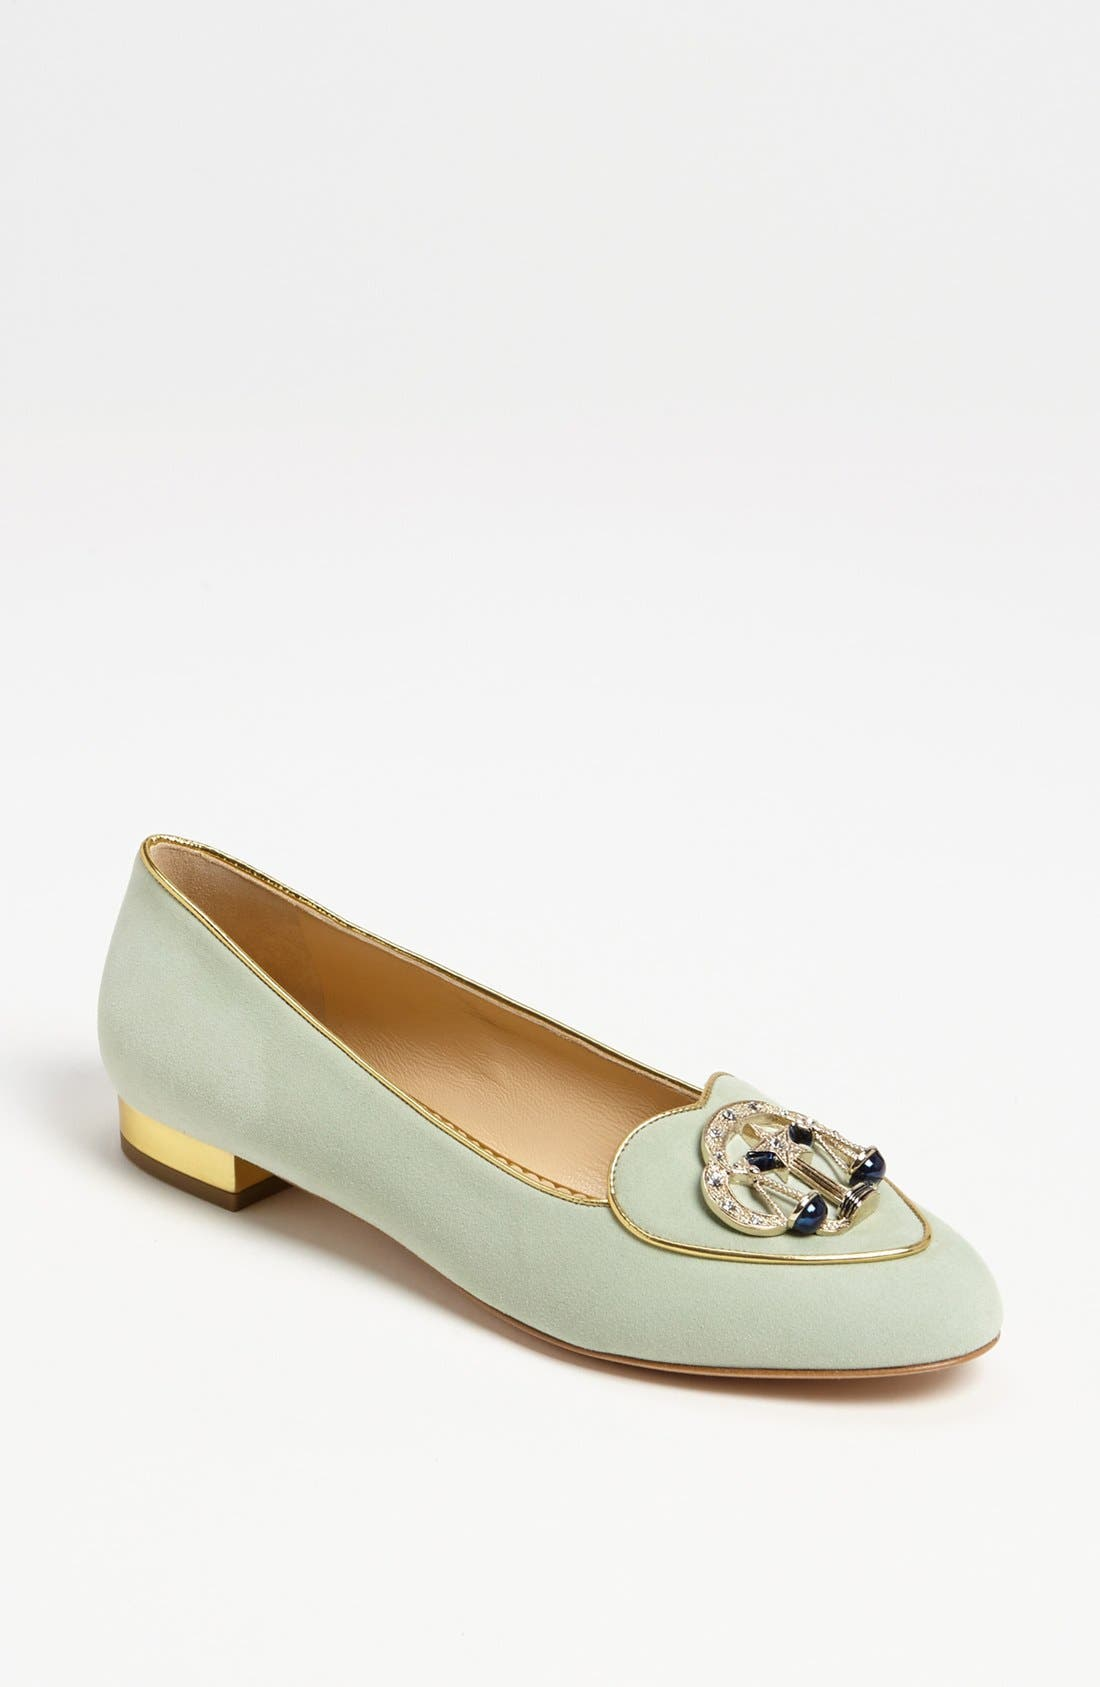 Alternate Image 1 Selected - Charlotte Olympia 'Libra' Flat